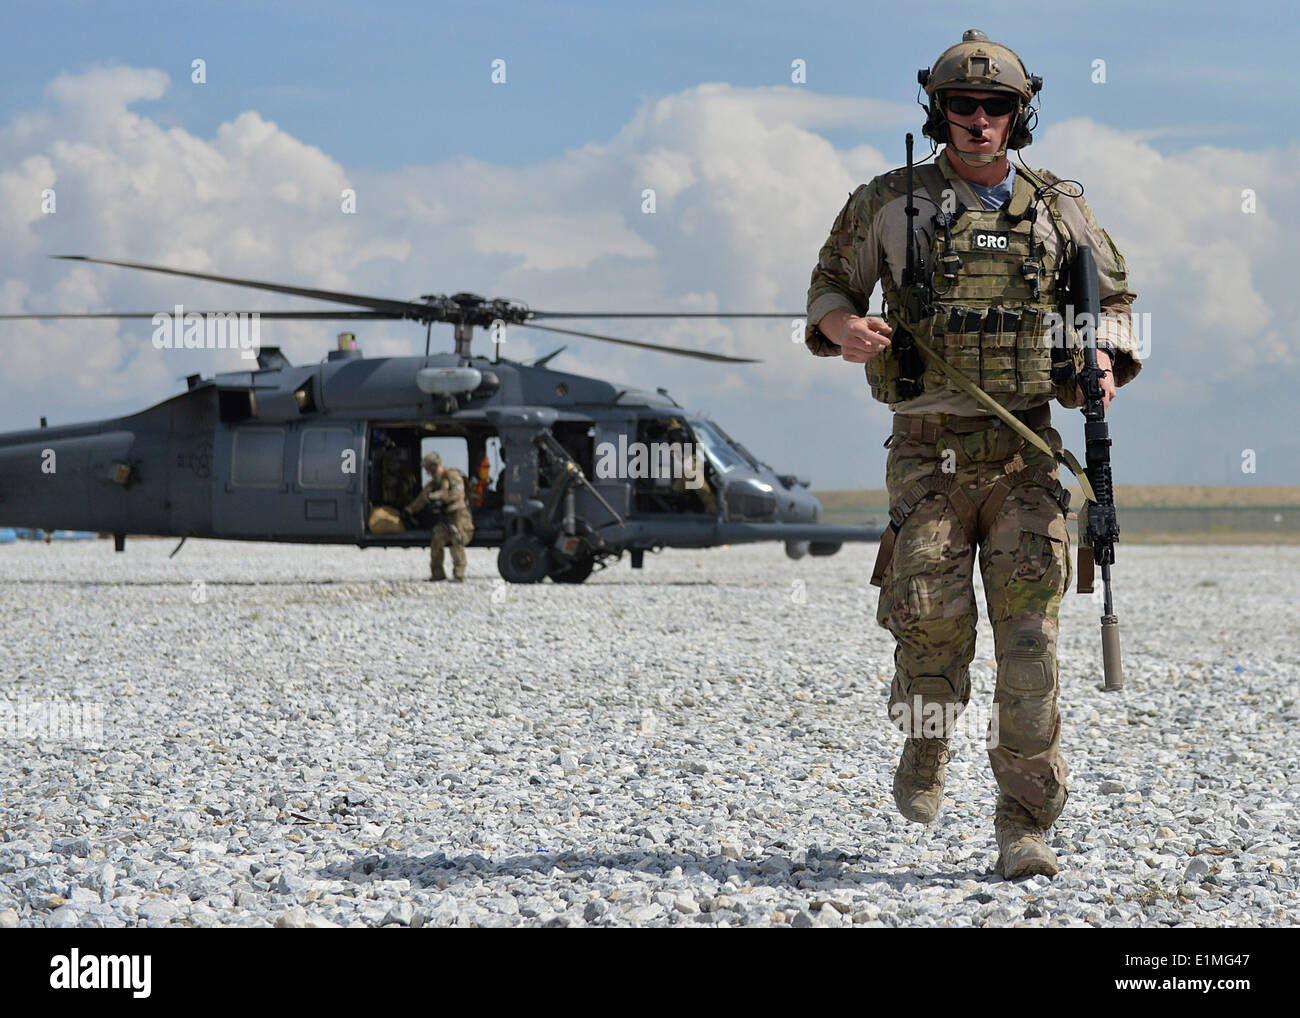 U S Air Force 1st Lt Christopher Goetz A Combat Rescue Officer With The 83rd Expeditionary Rescue Squadron Walks From An Hh